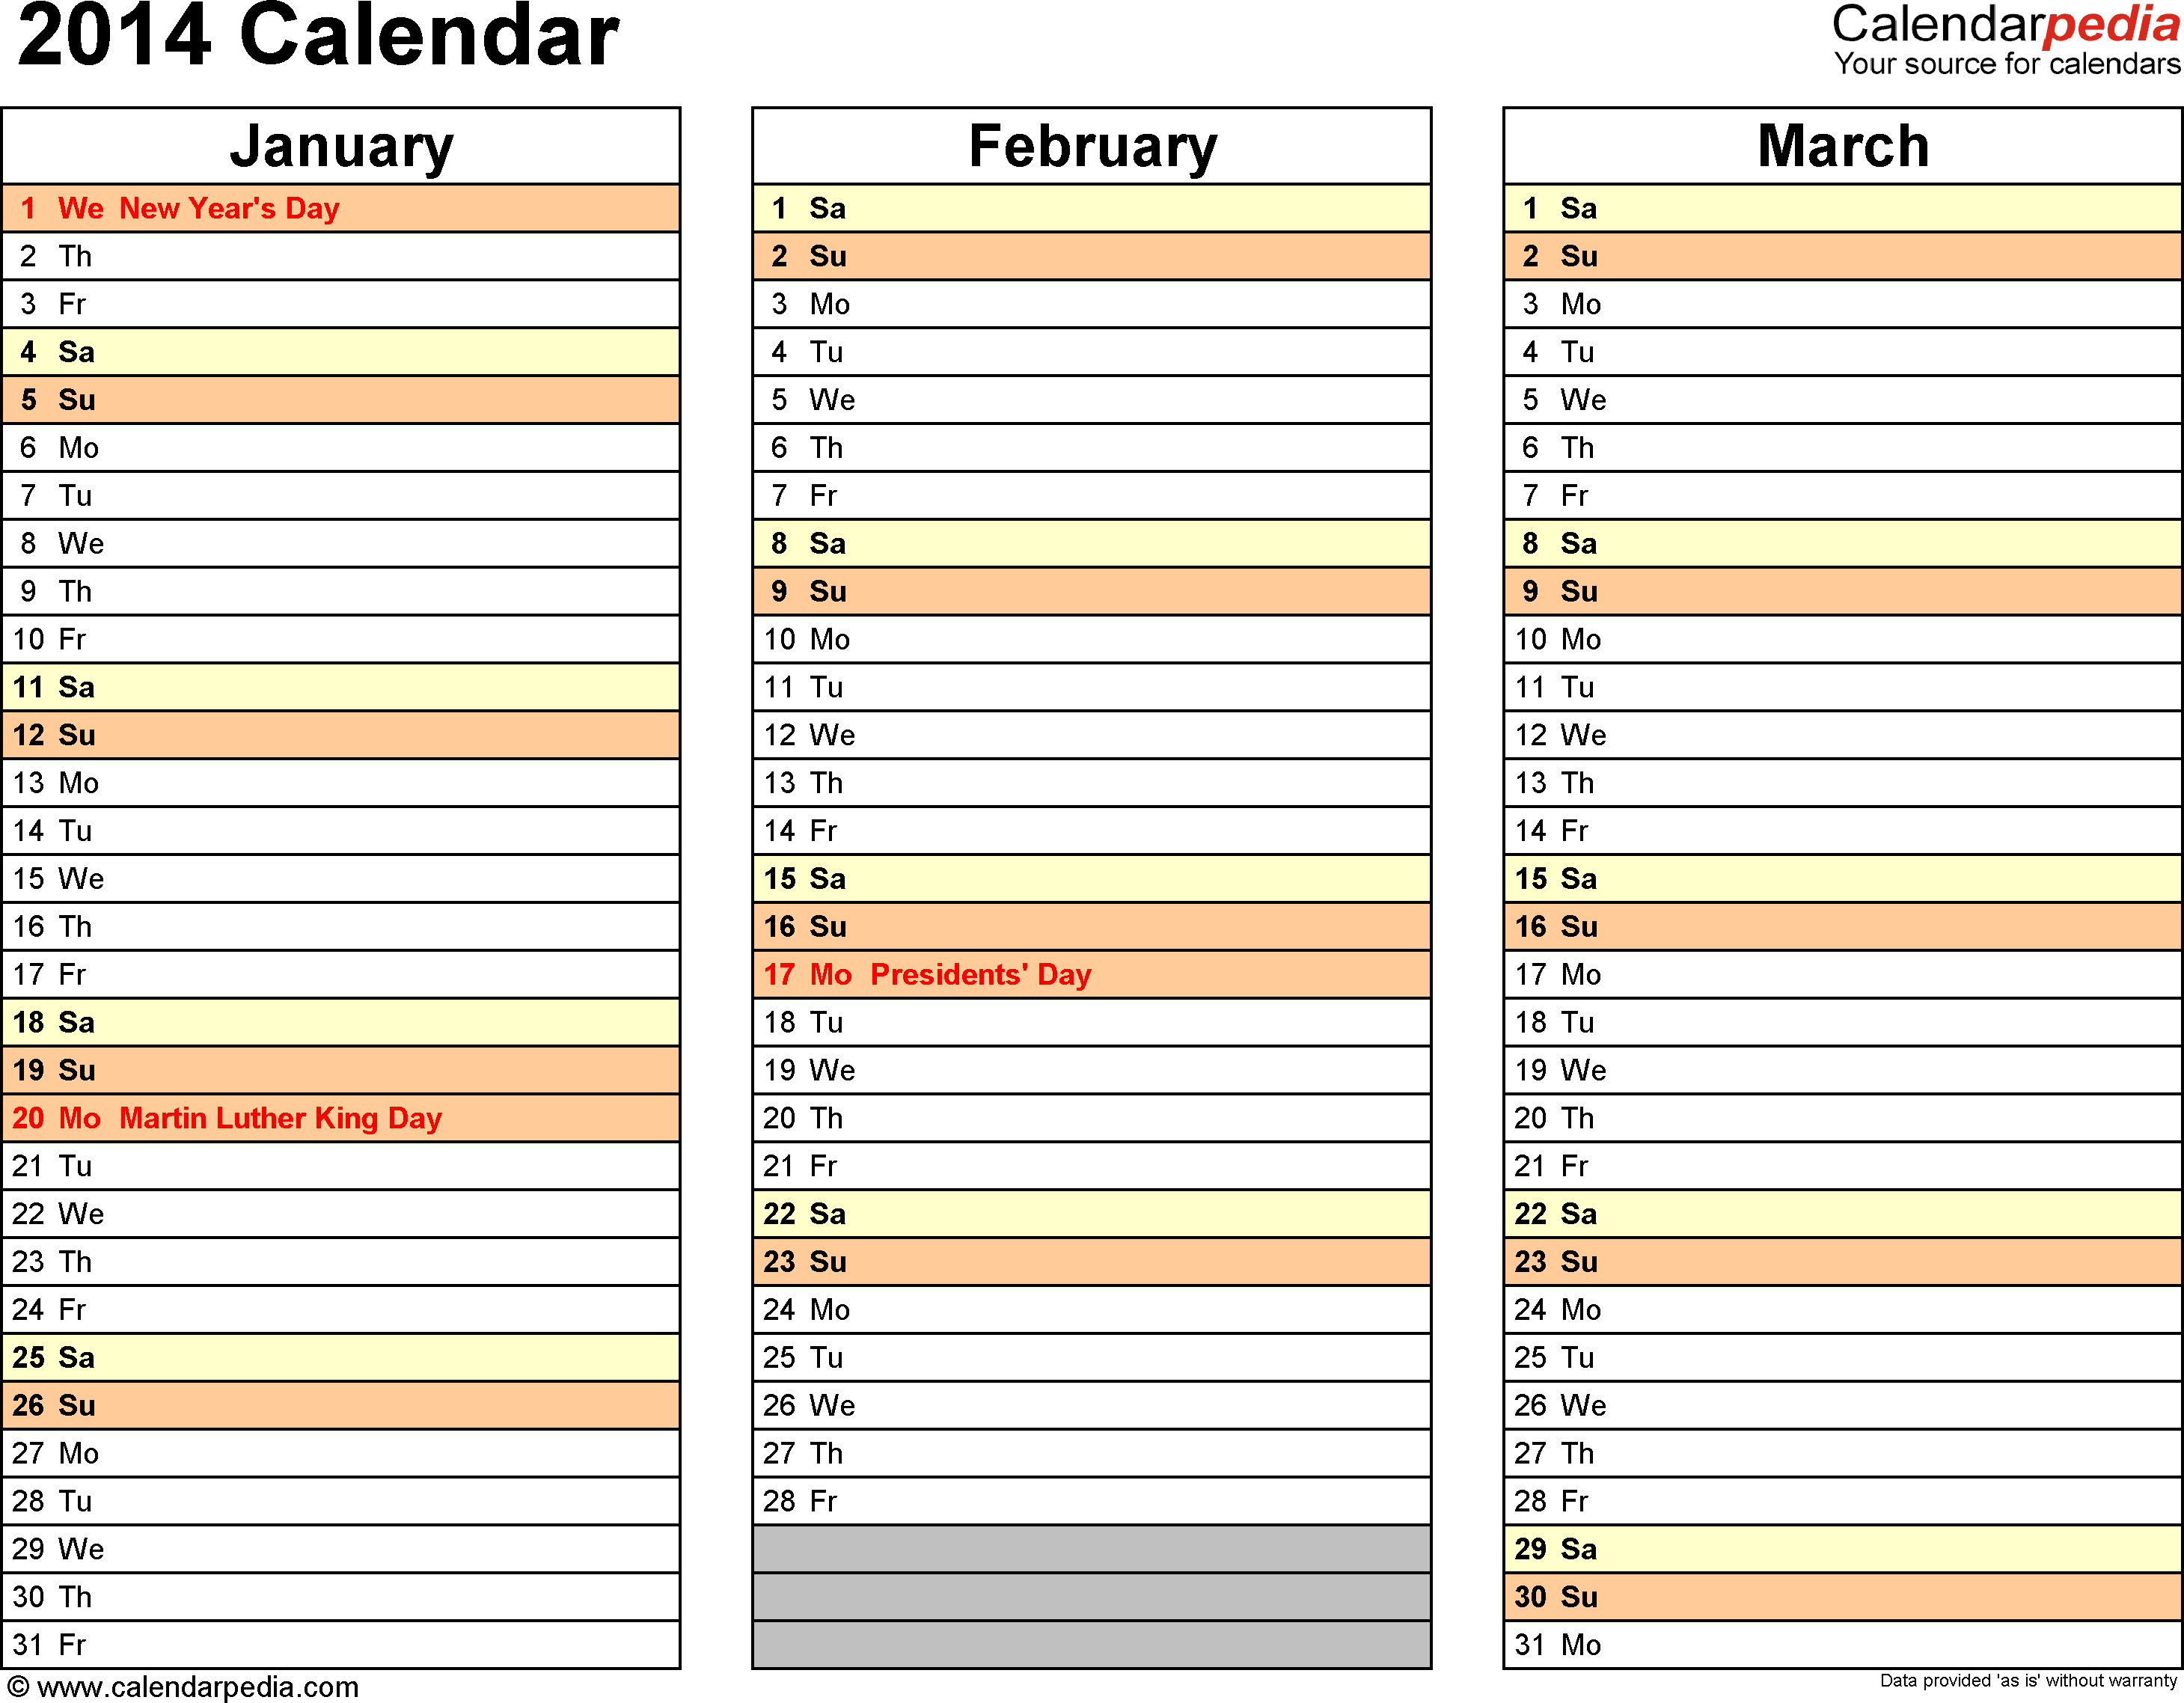 Template 6: 2014 Calendar for PDF, landscape orientation, months horizontally, 4 pages